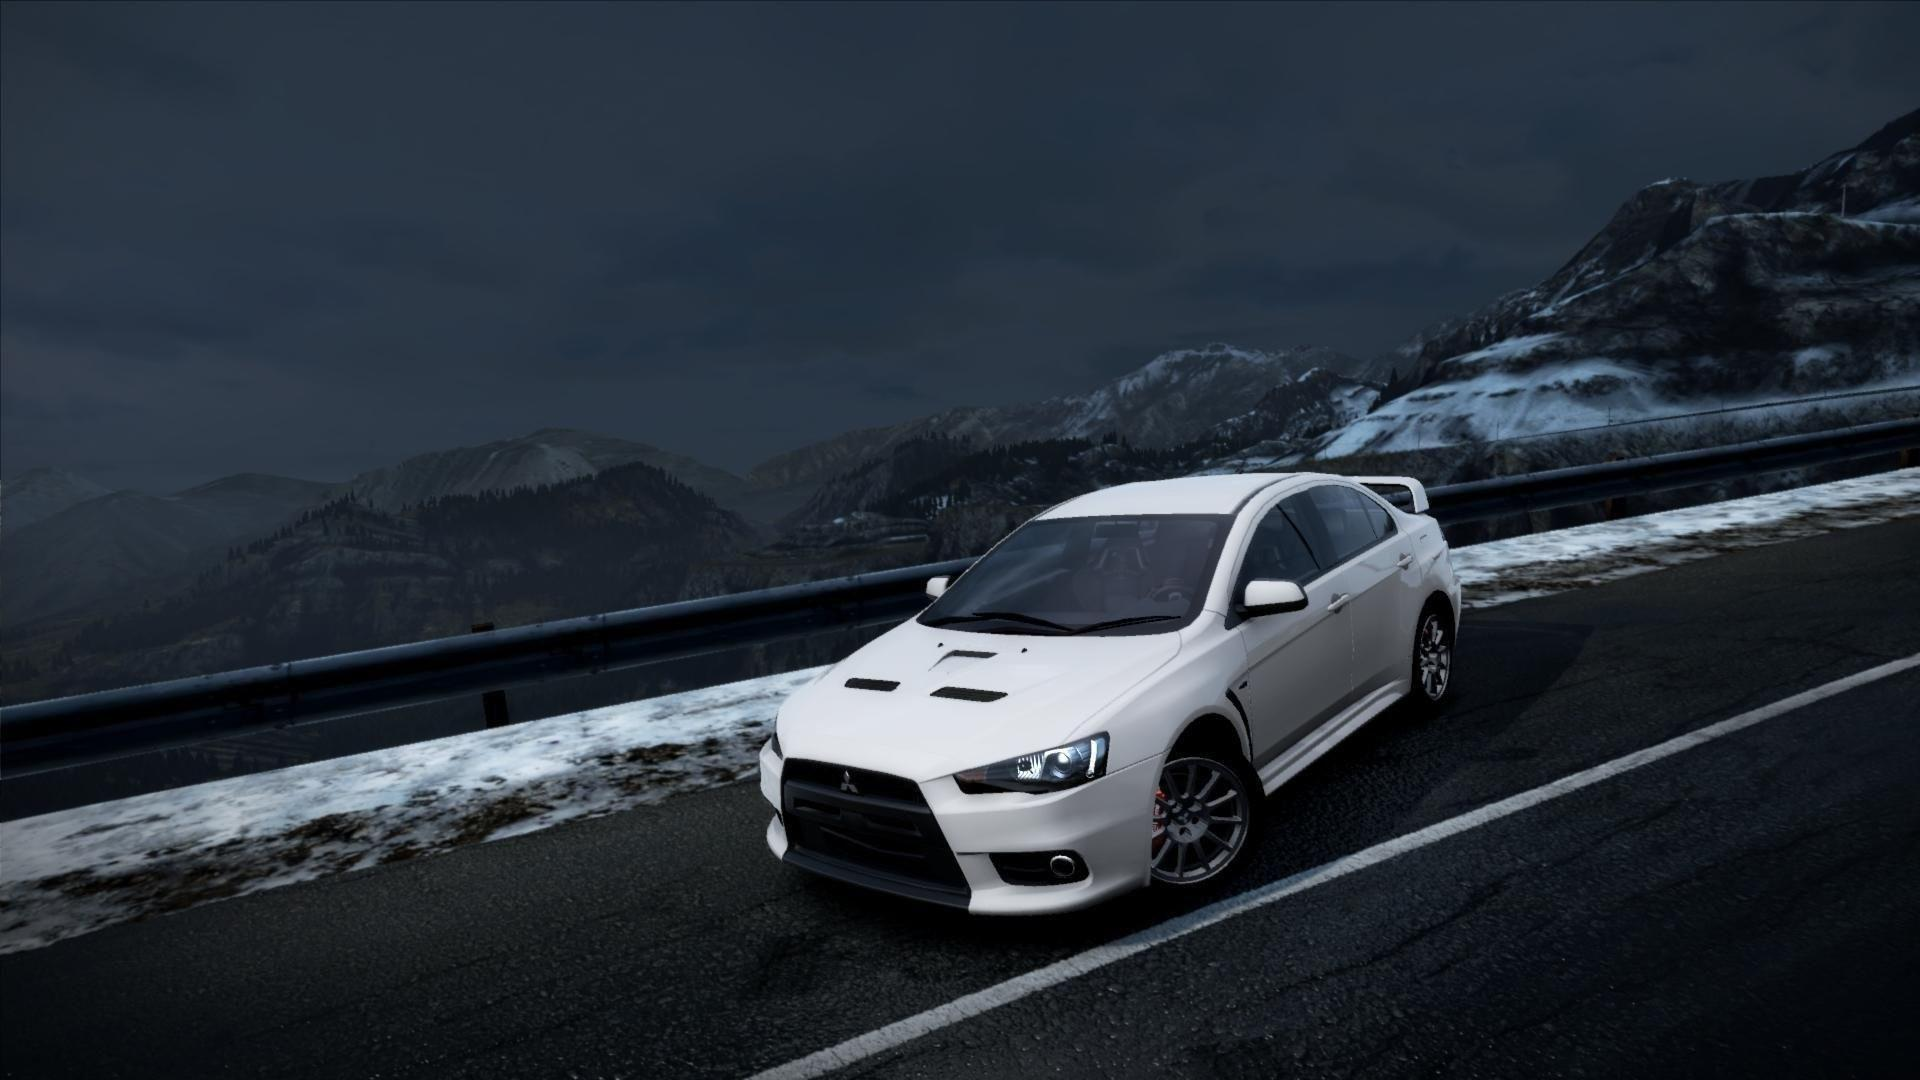 Mitsubishi Lancer Evolution X Wallpapers